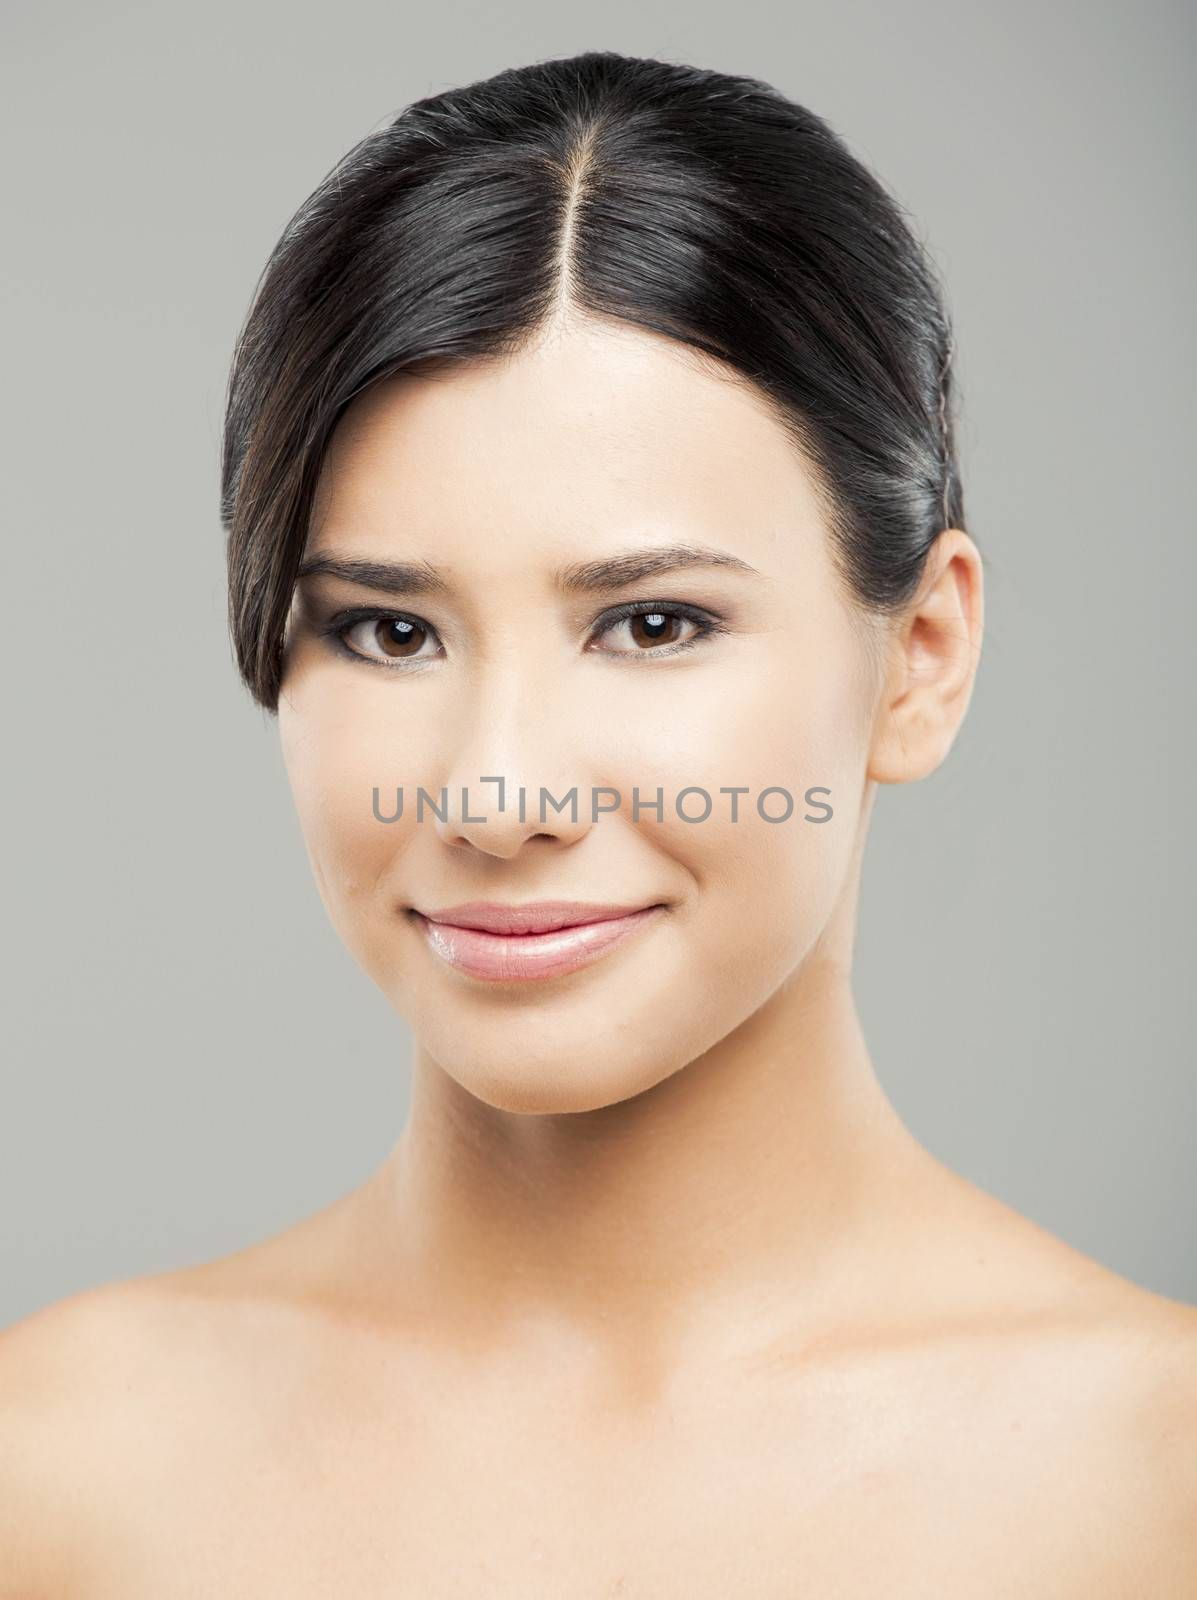 Beauty portrait of young asian woman smiling, over a gray background.